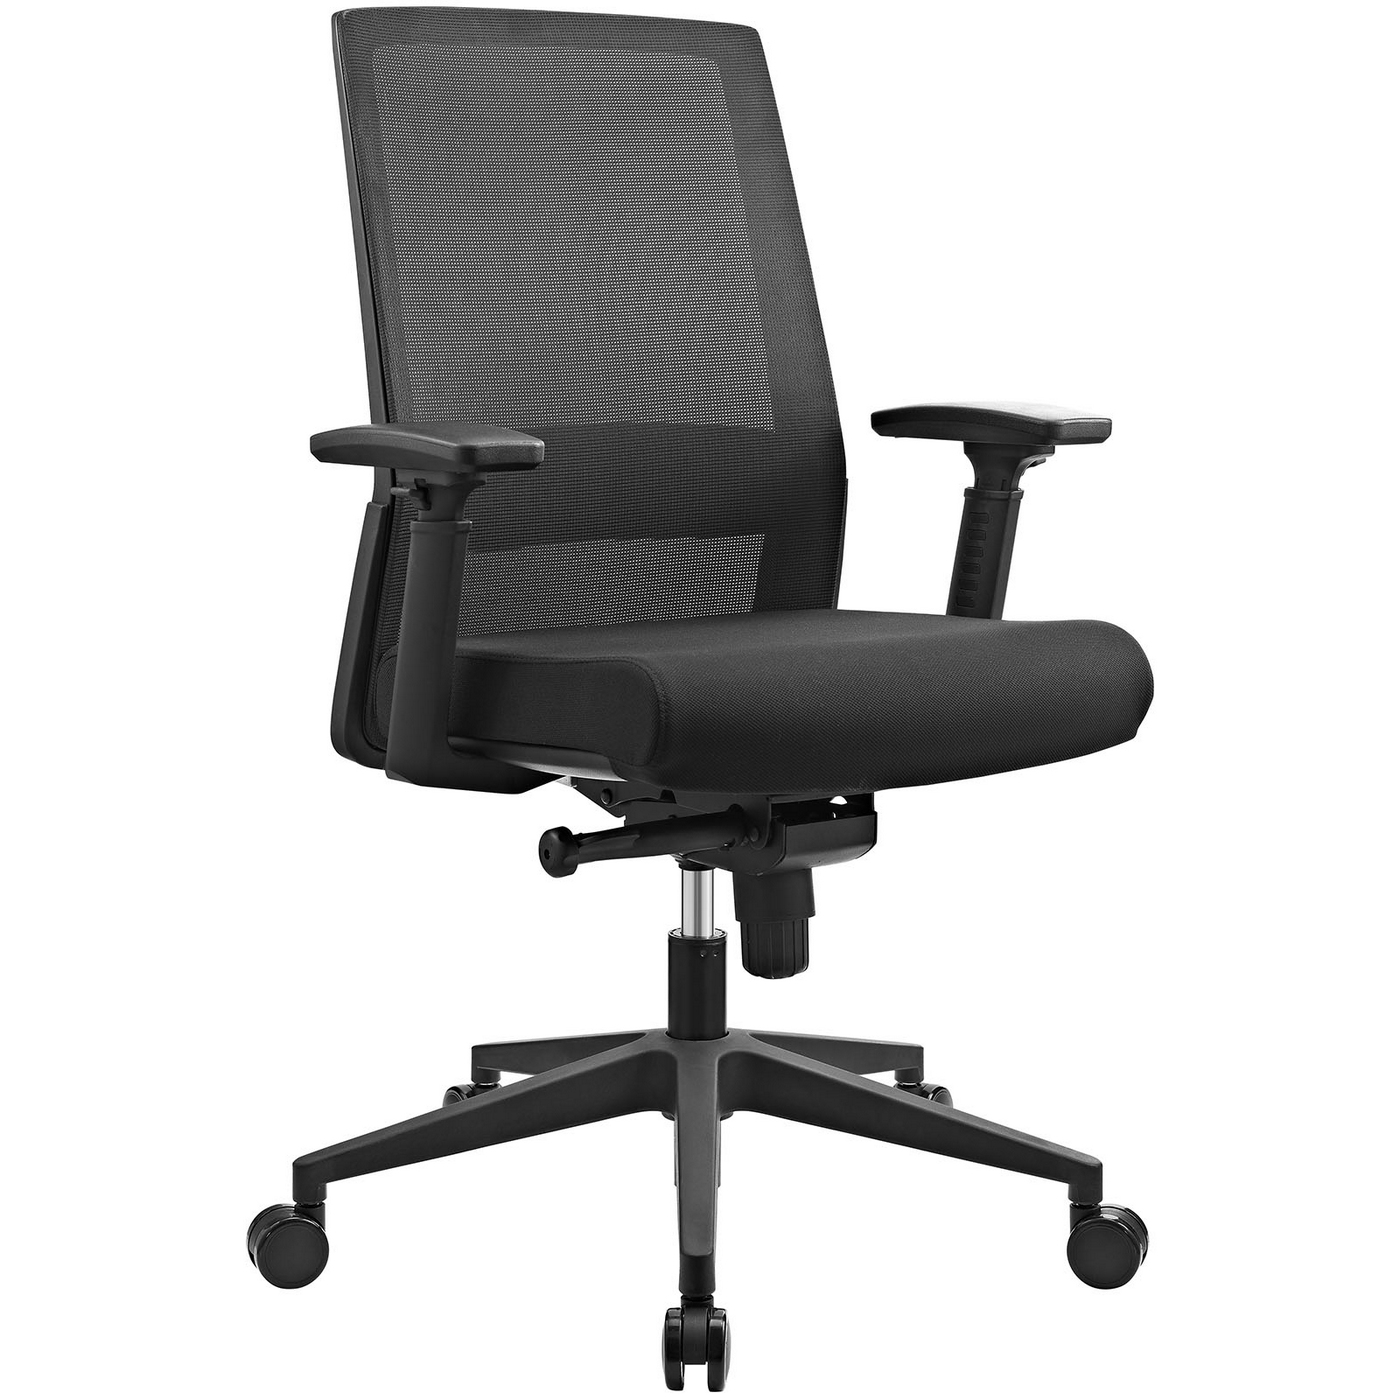 shift ergonomic mesh back office chair with lumbar support black. Black Bedroom Furniture Sets. Home Design Ideas